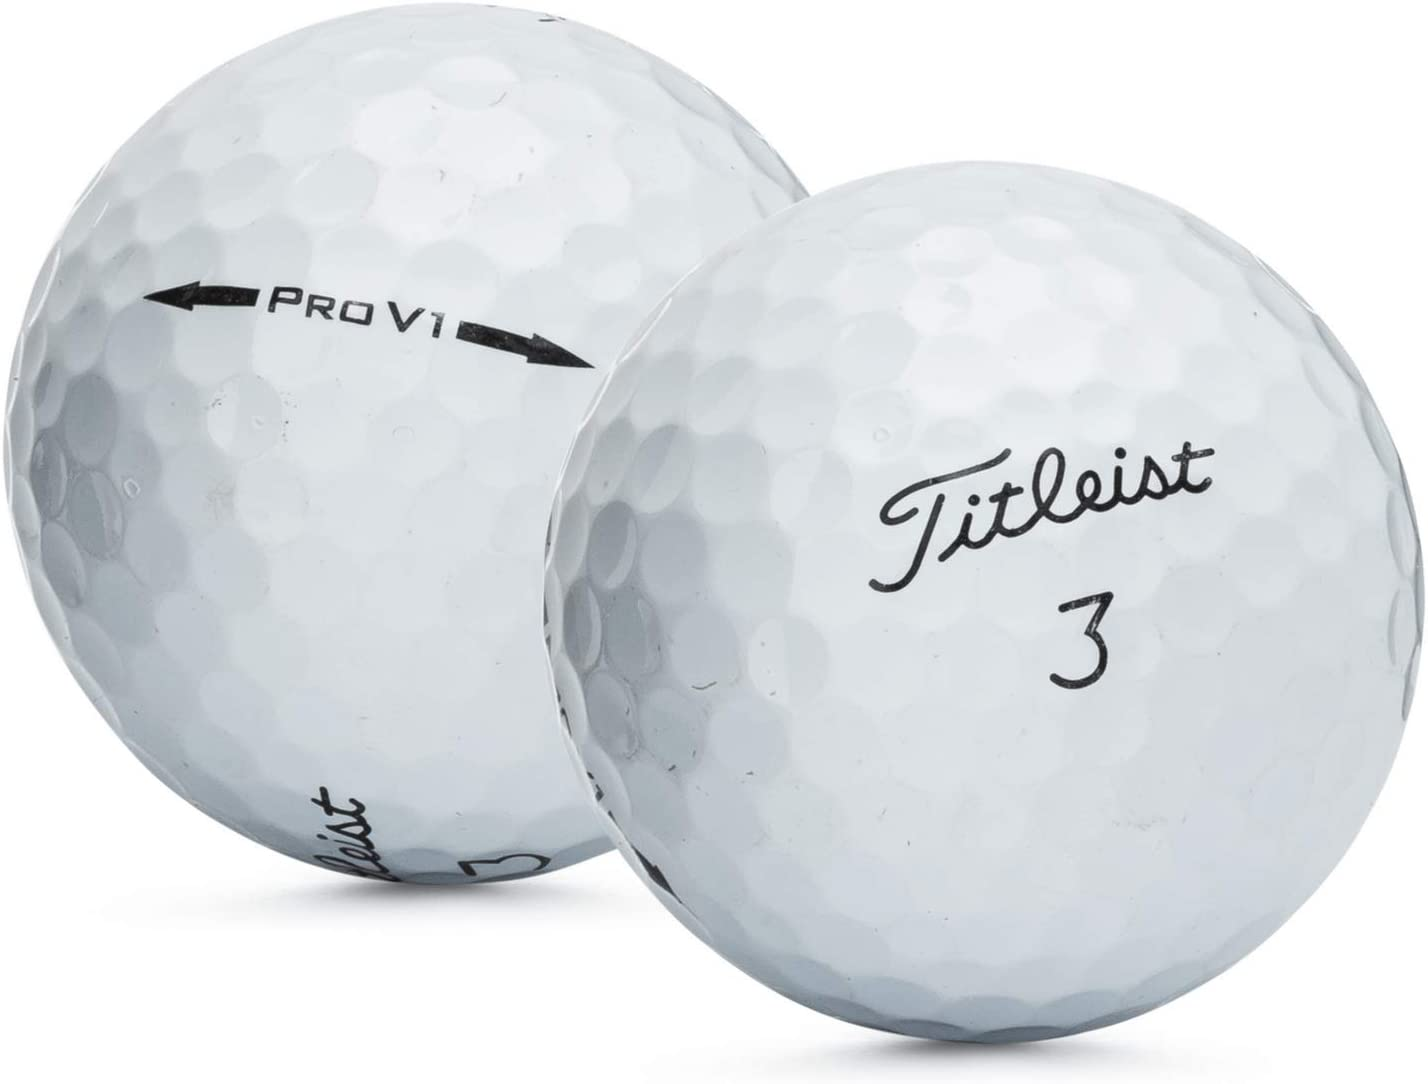 50 Near Mint Titleist Pro V1 AAAA Recycled Used Golf Balls, 50-Pack